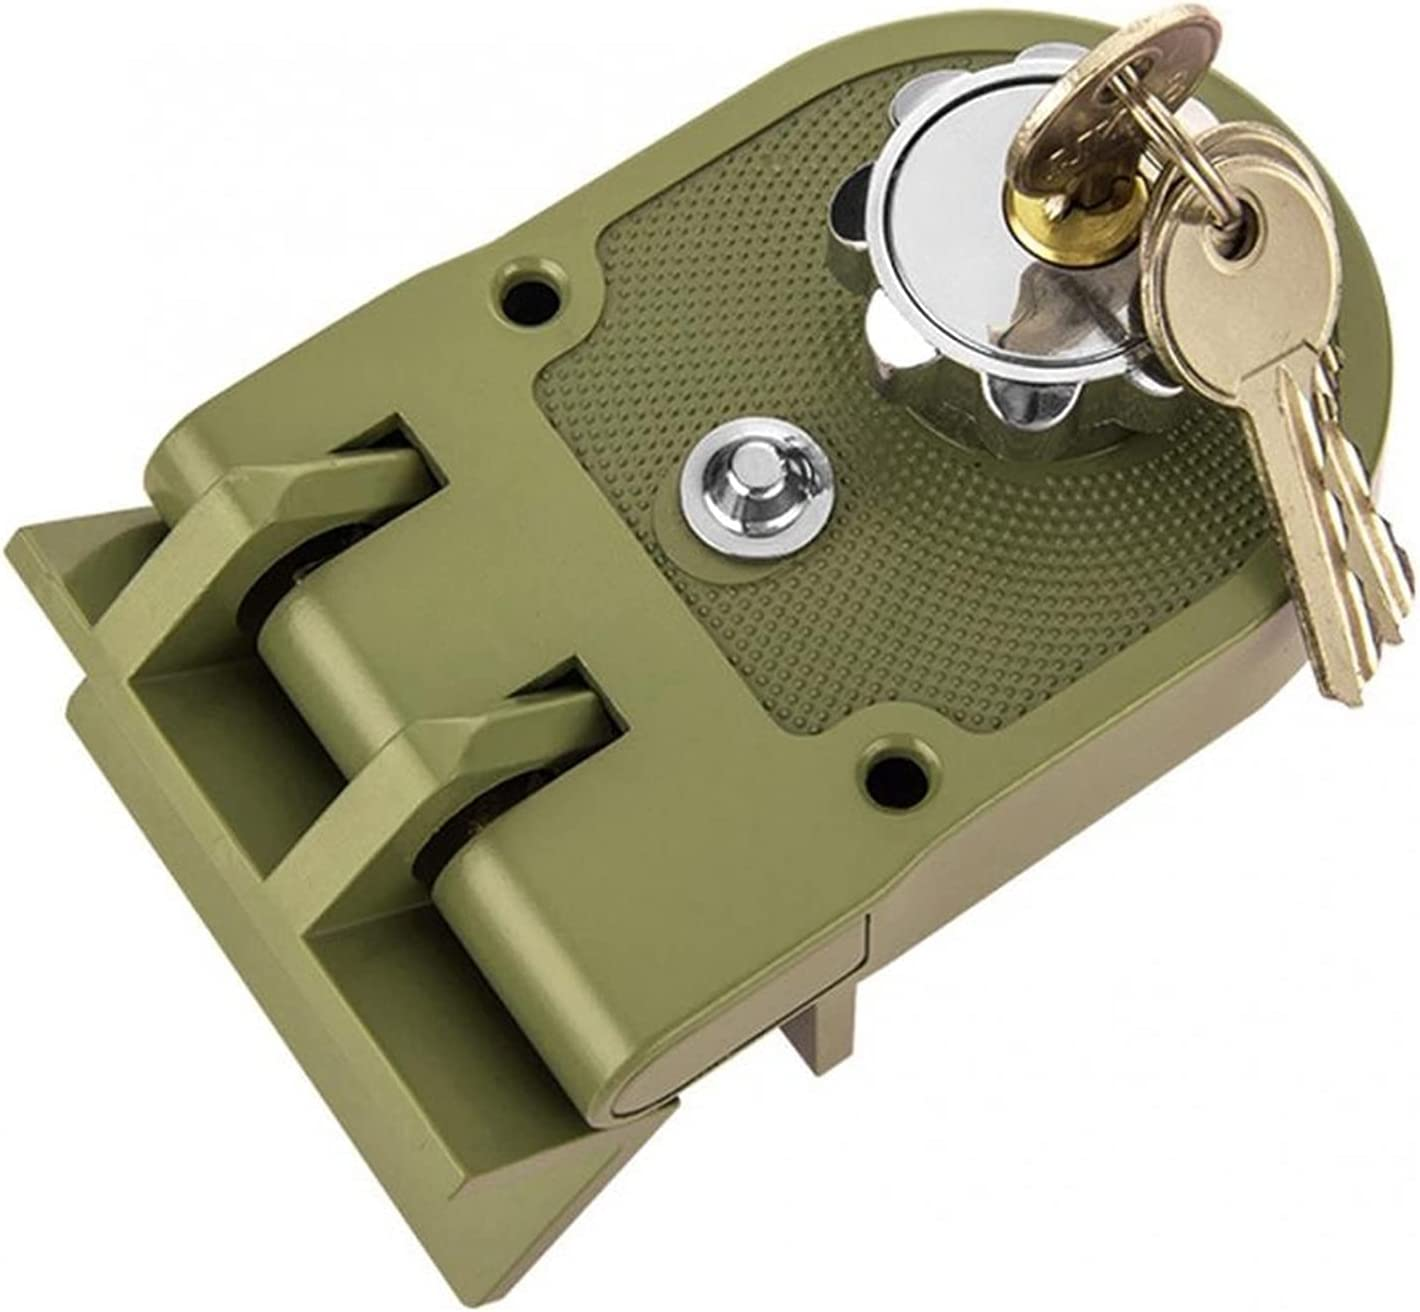 YYDMBH Lock Cylinders Zinc Alloy Durable Mechanical Sliding Door Lock Home Security Anti-Theft Jimmy-Proof Lock Half/Full/Reverse/Full Open Functions (Color : Right Open)